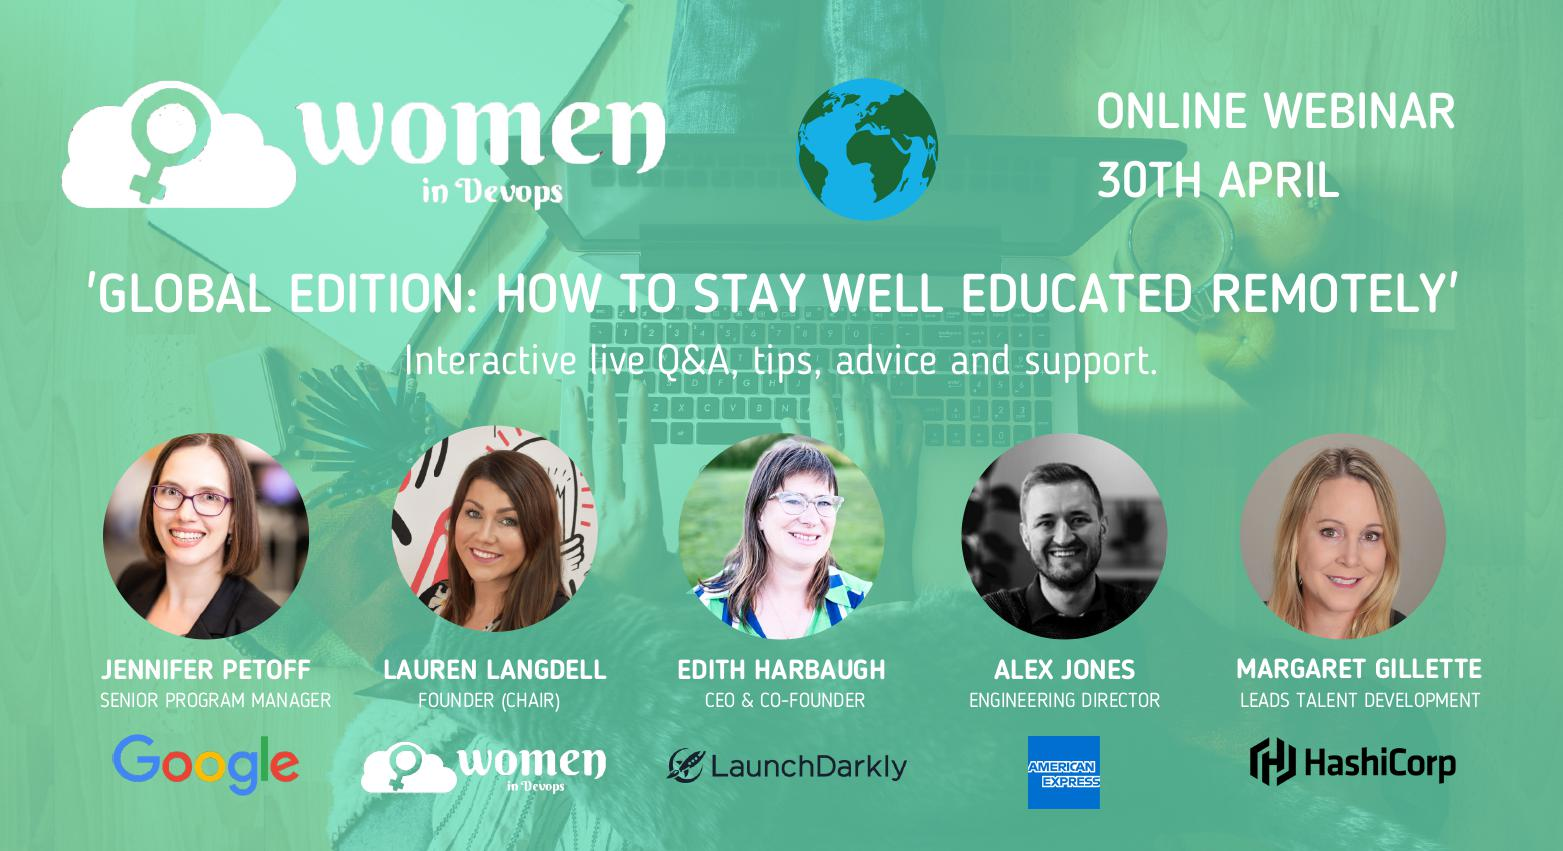 Webinar #2 - Global Edition: How to stay well educated remotely